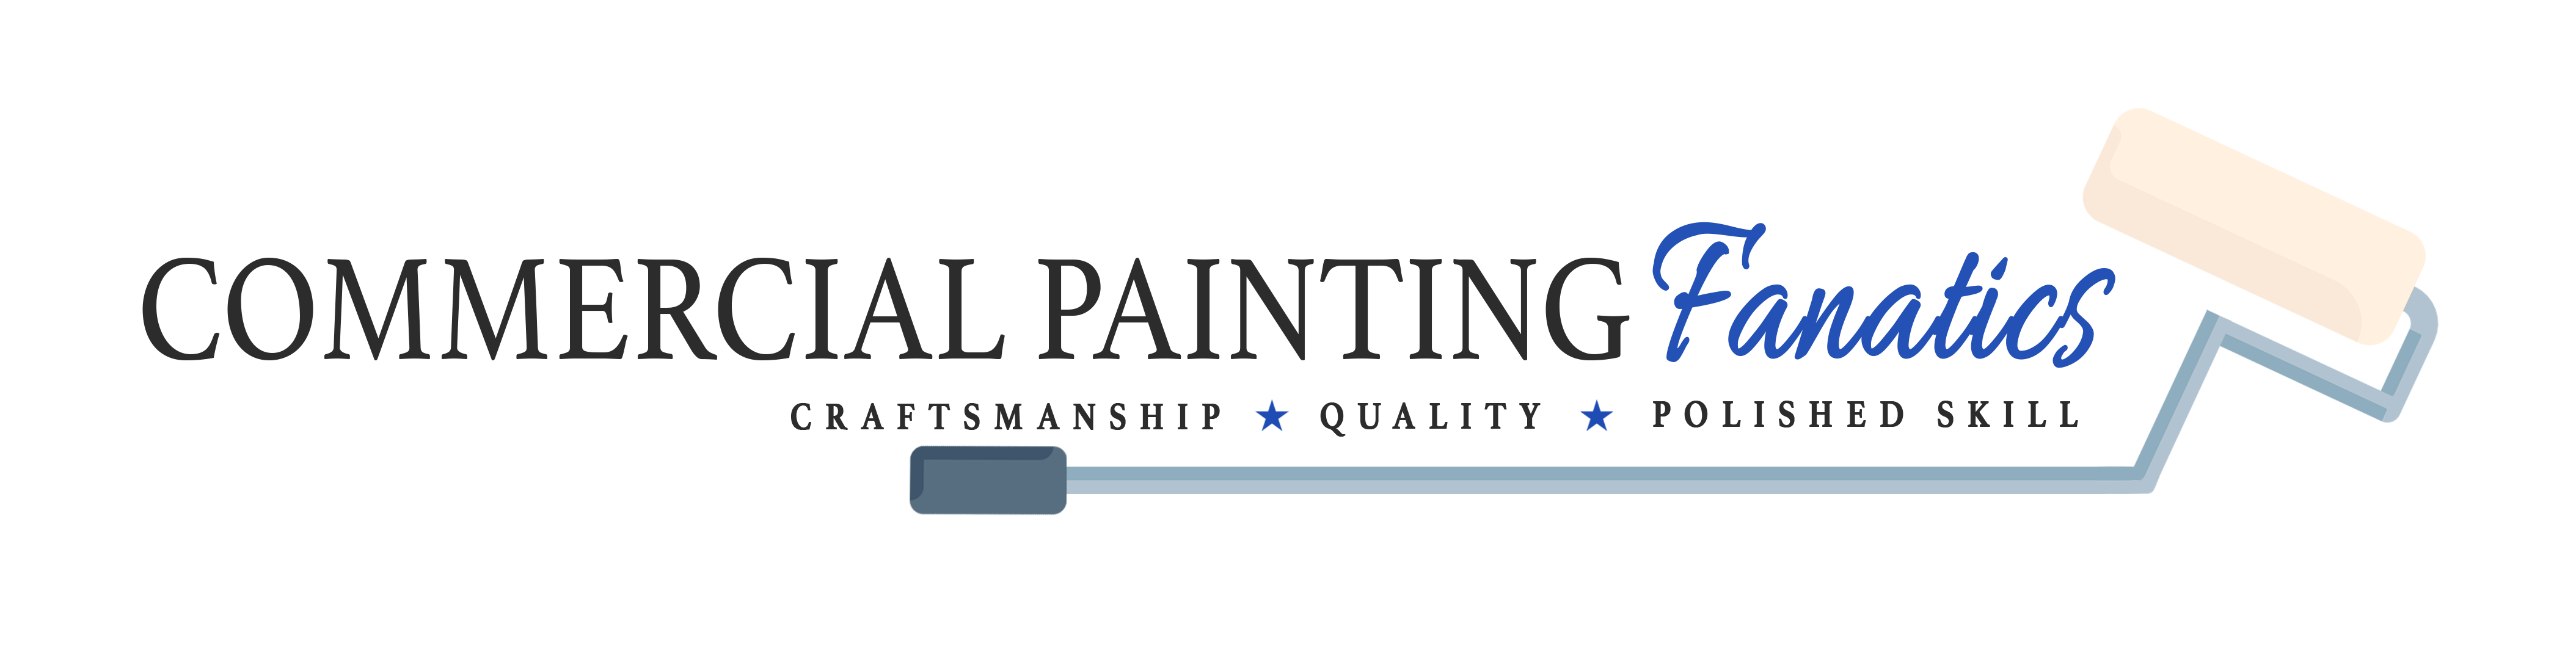 Commercial Painters Atlanta